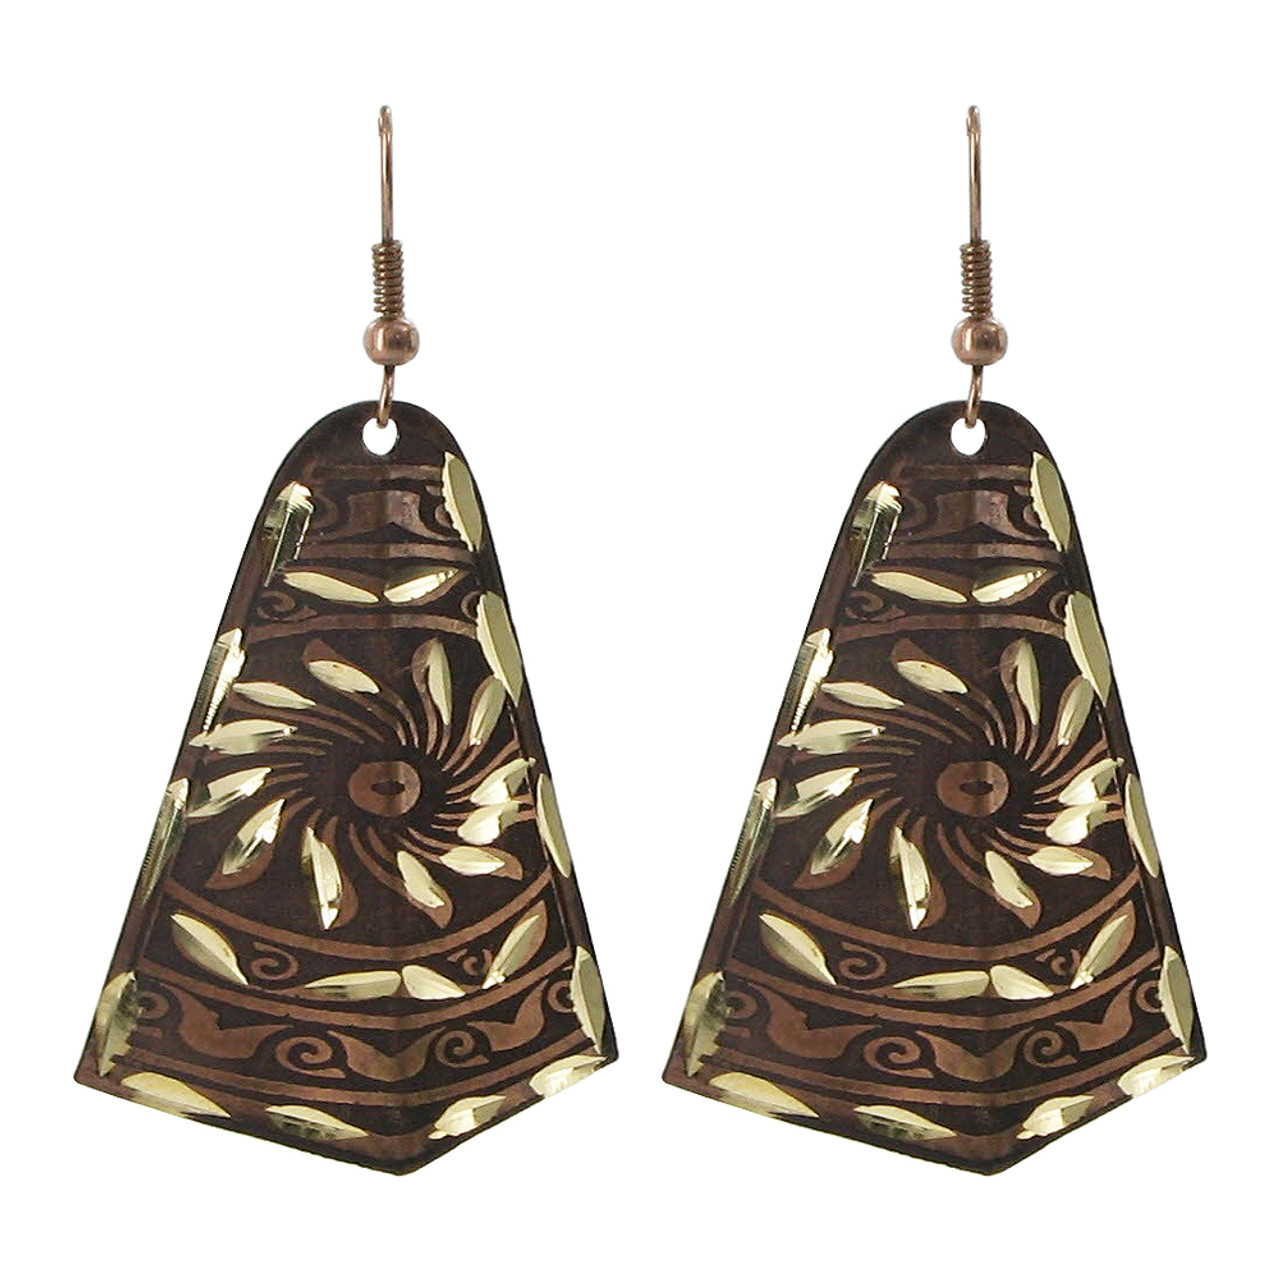 1 x 1.7 inch Designer Fashion Drop Earrings with French Wire Findings